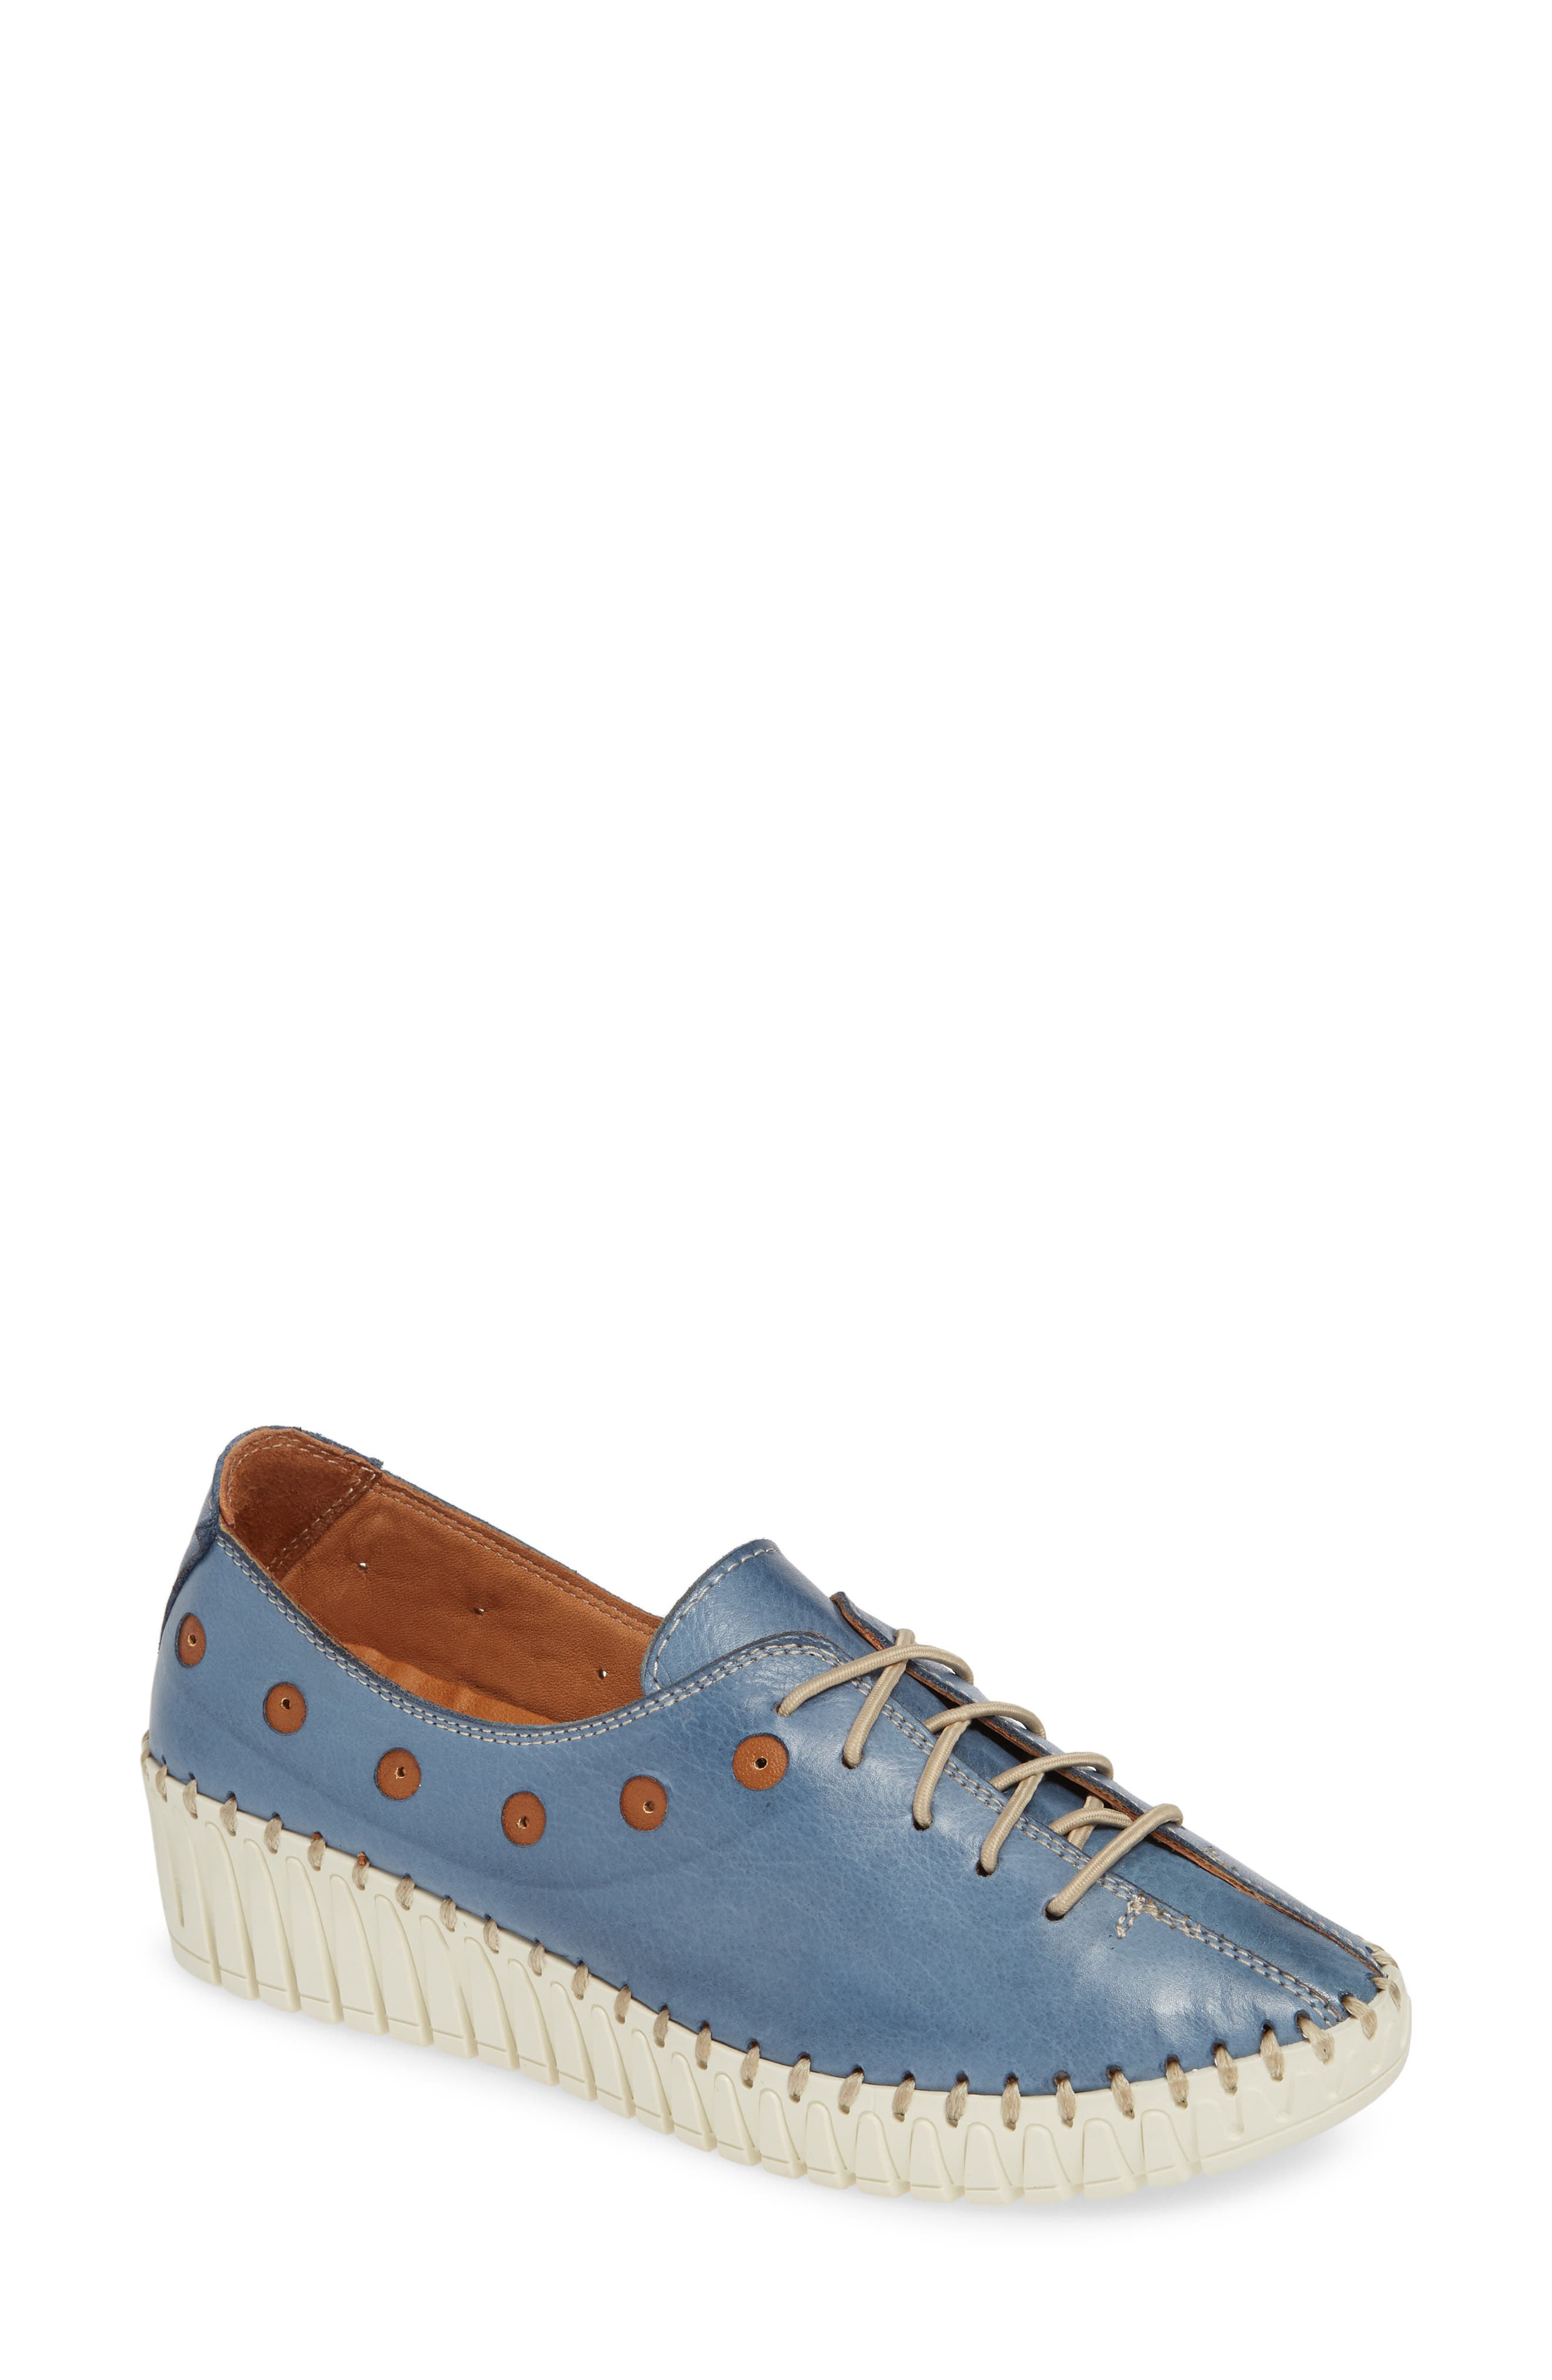 SHERIDAN MIA, Kyle Sneaker, Main thumbnail 1, color, JEANS LEATHER